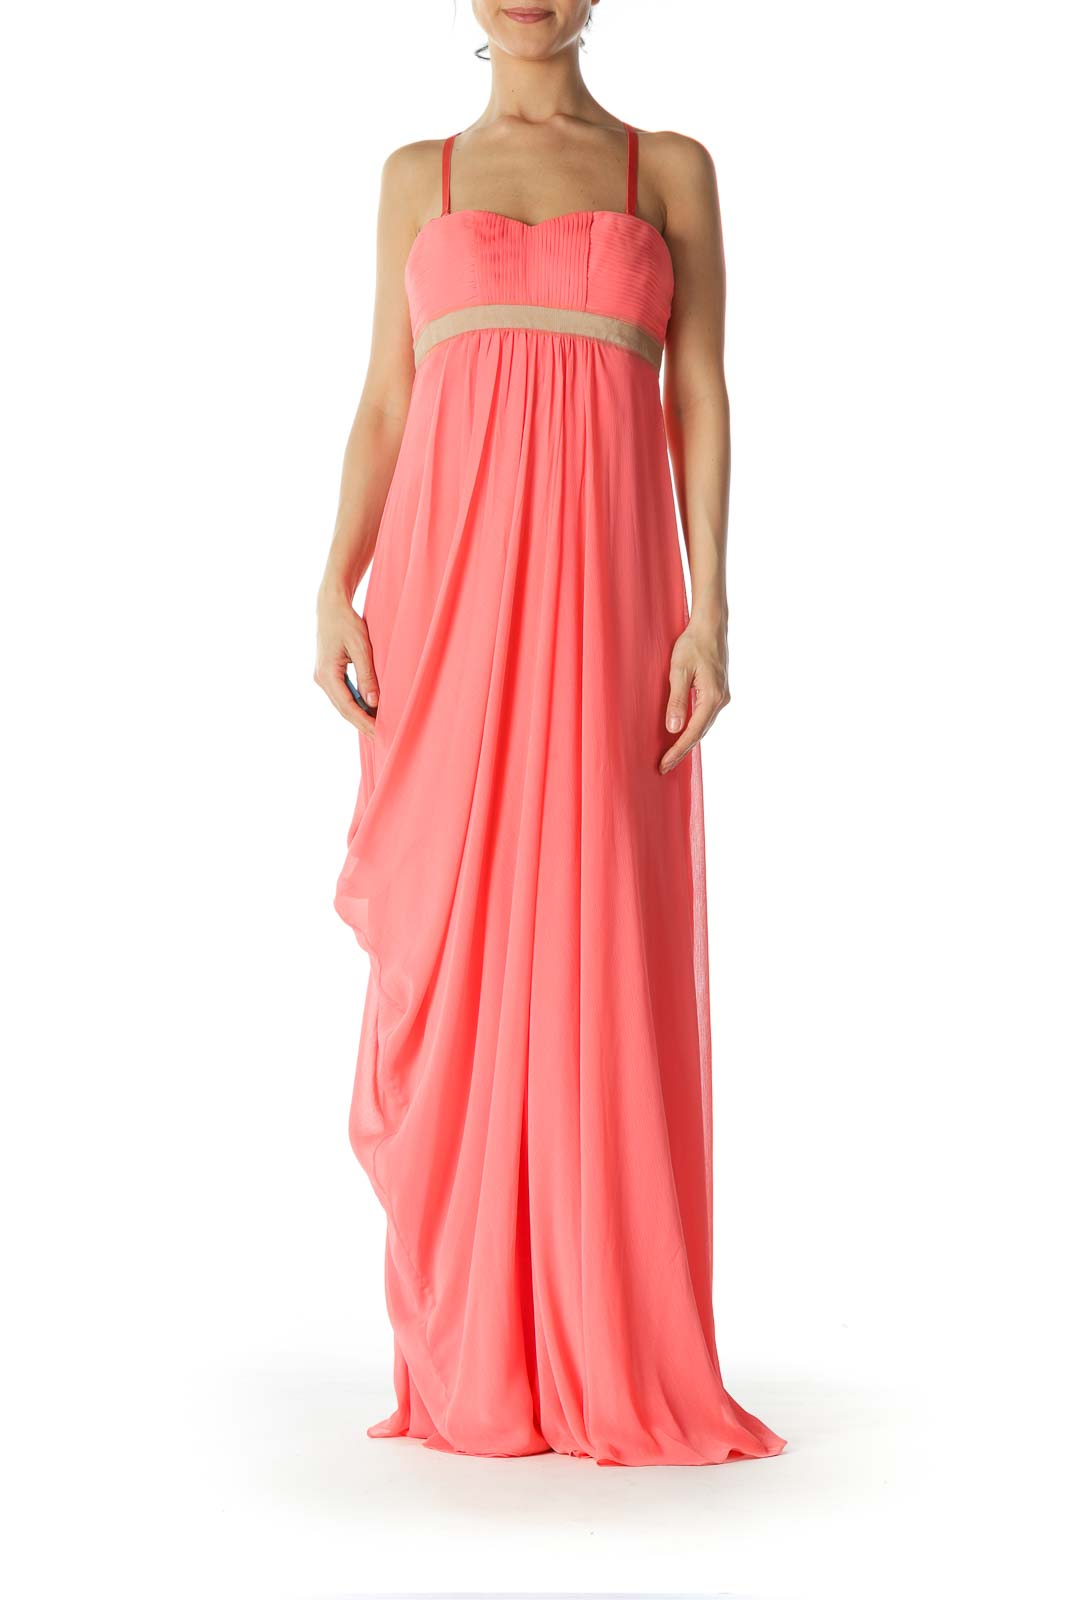 Pink Strapless Draped Evening Dress